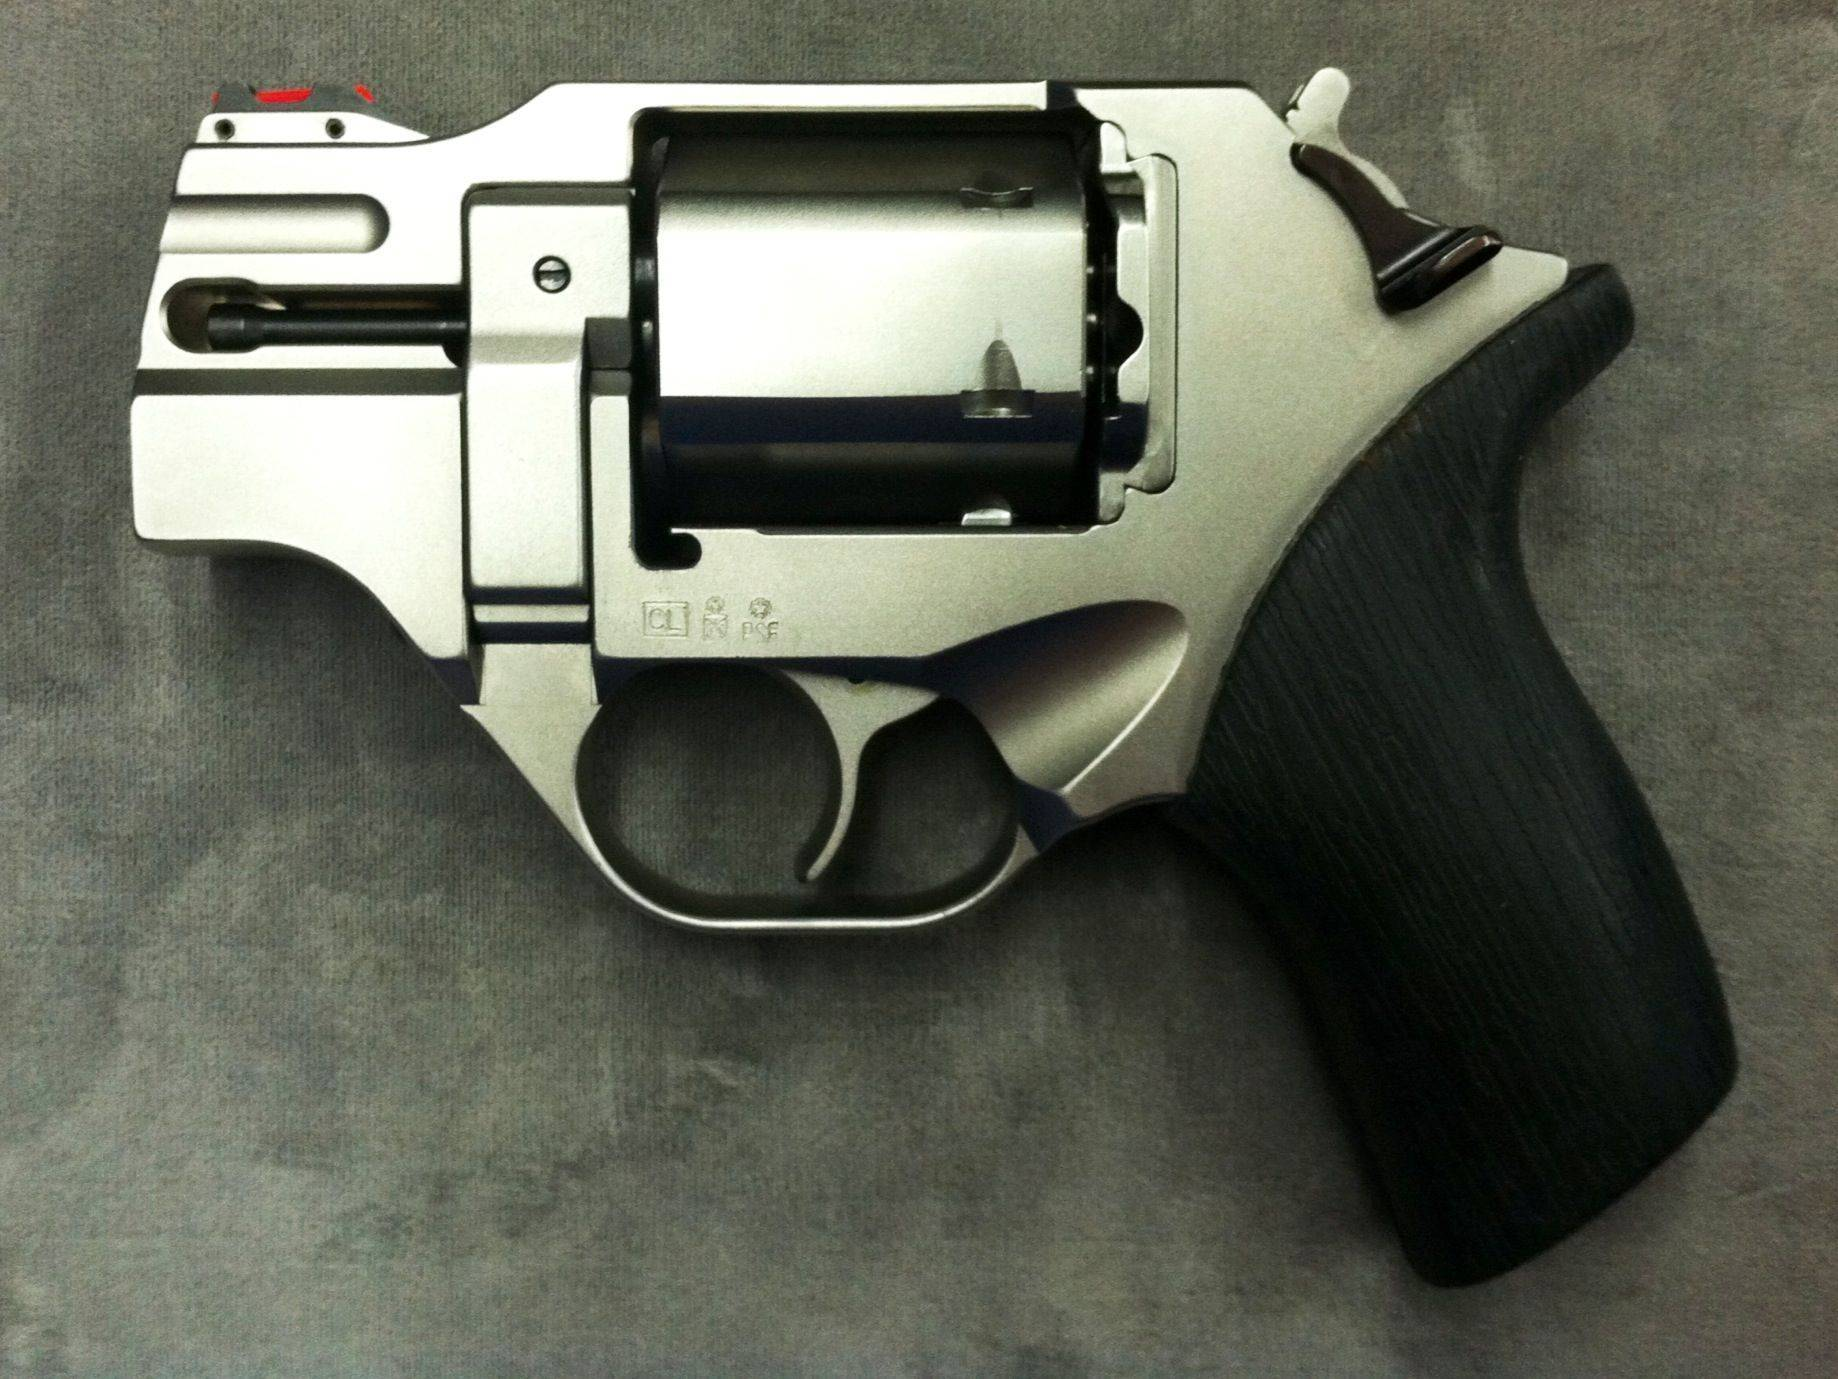 [review] chiappa rhino 40ds: current favorite revolver